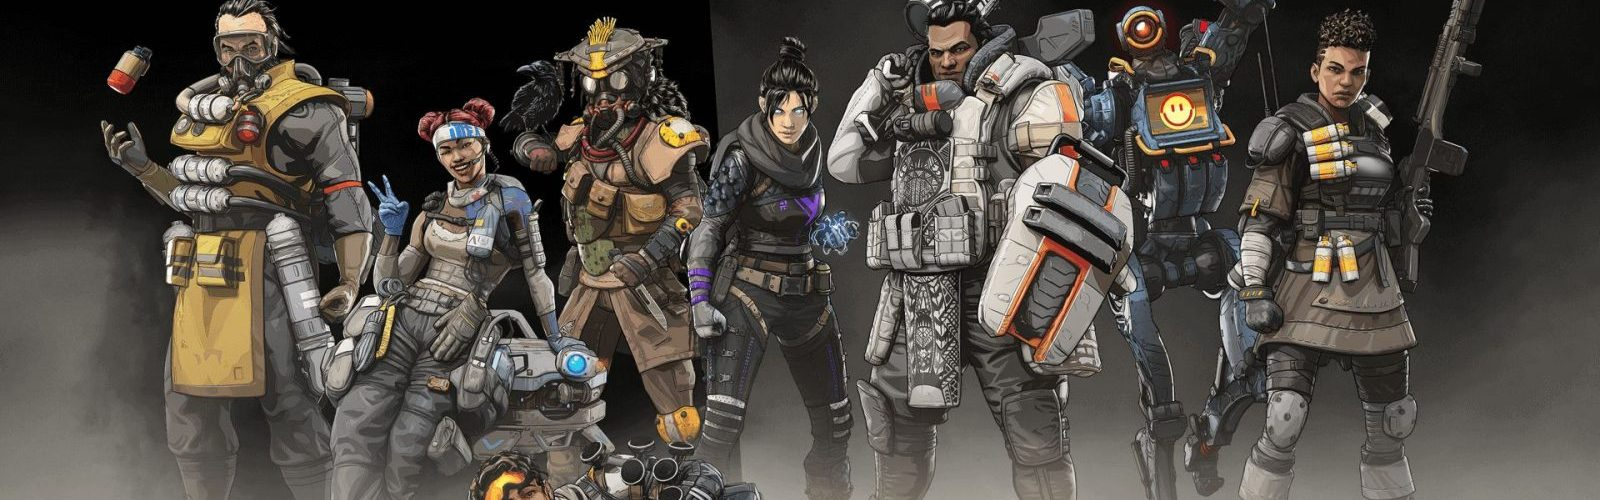 How to survive apex legends